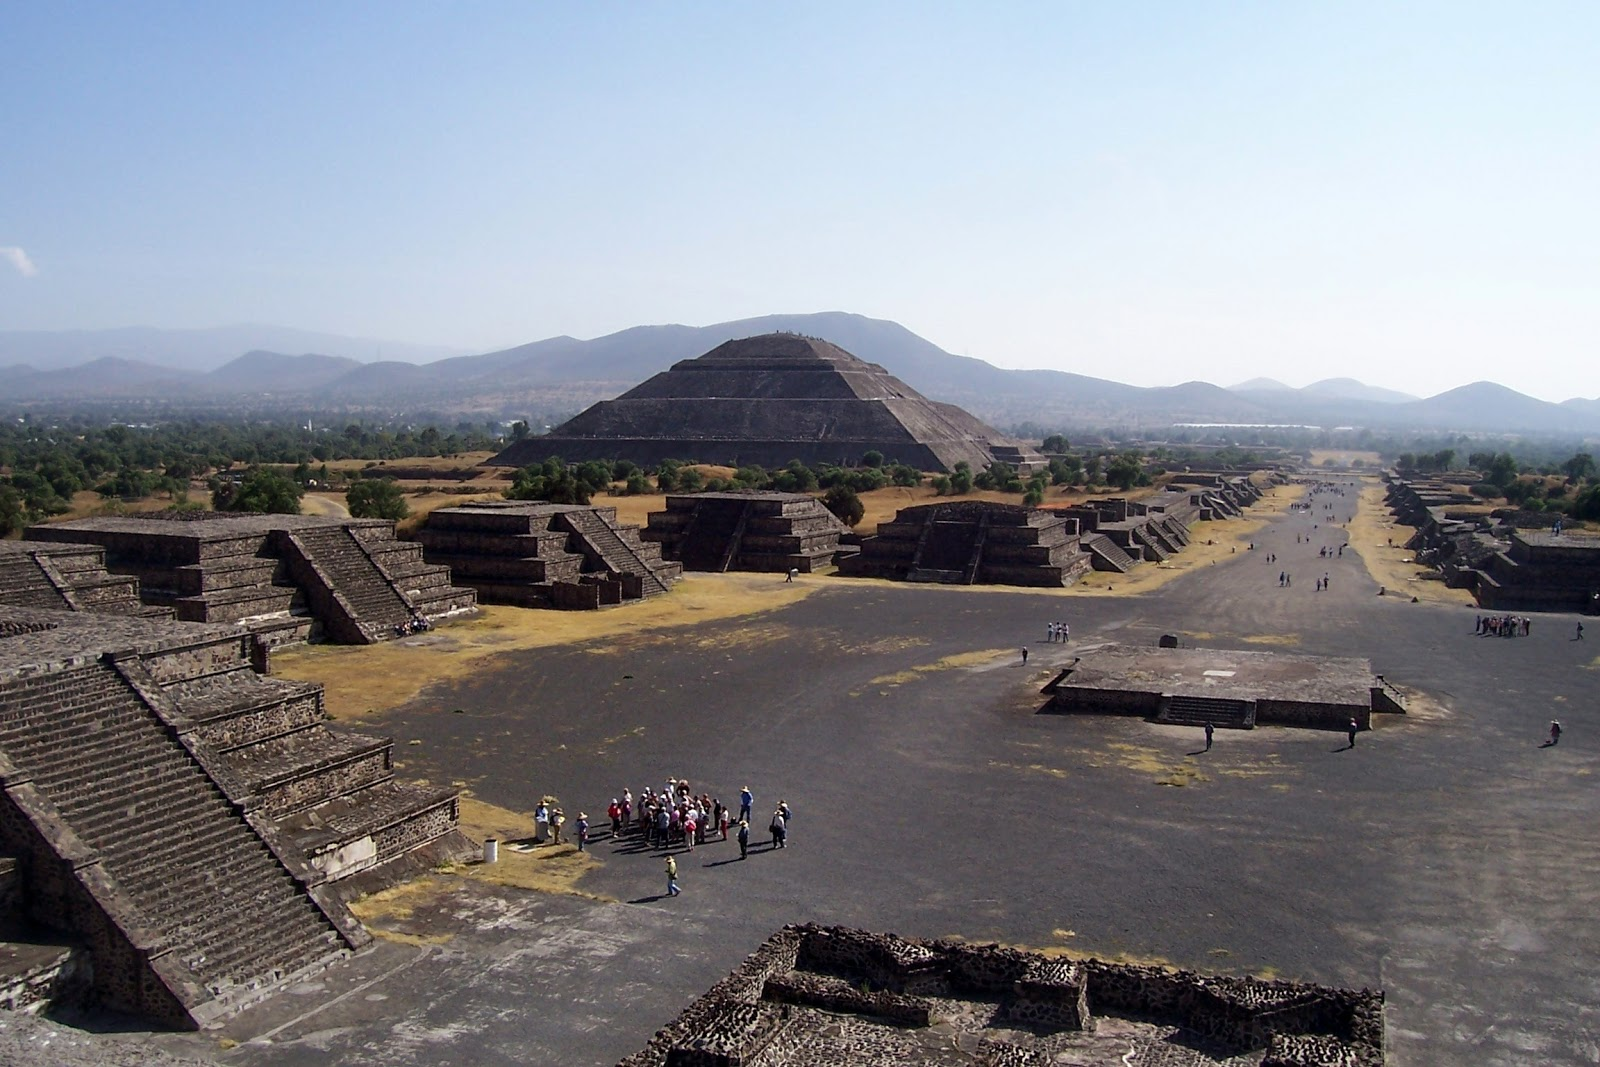 The Pyramids of Teotihuacan in Mexico